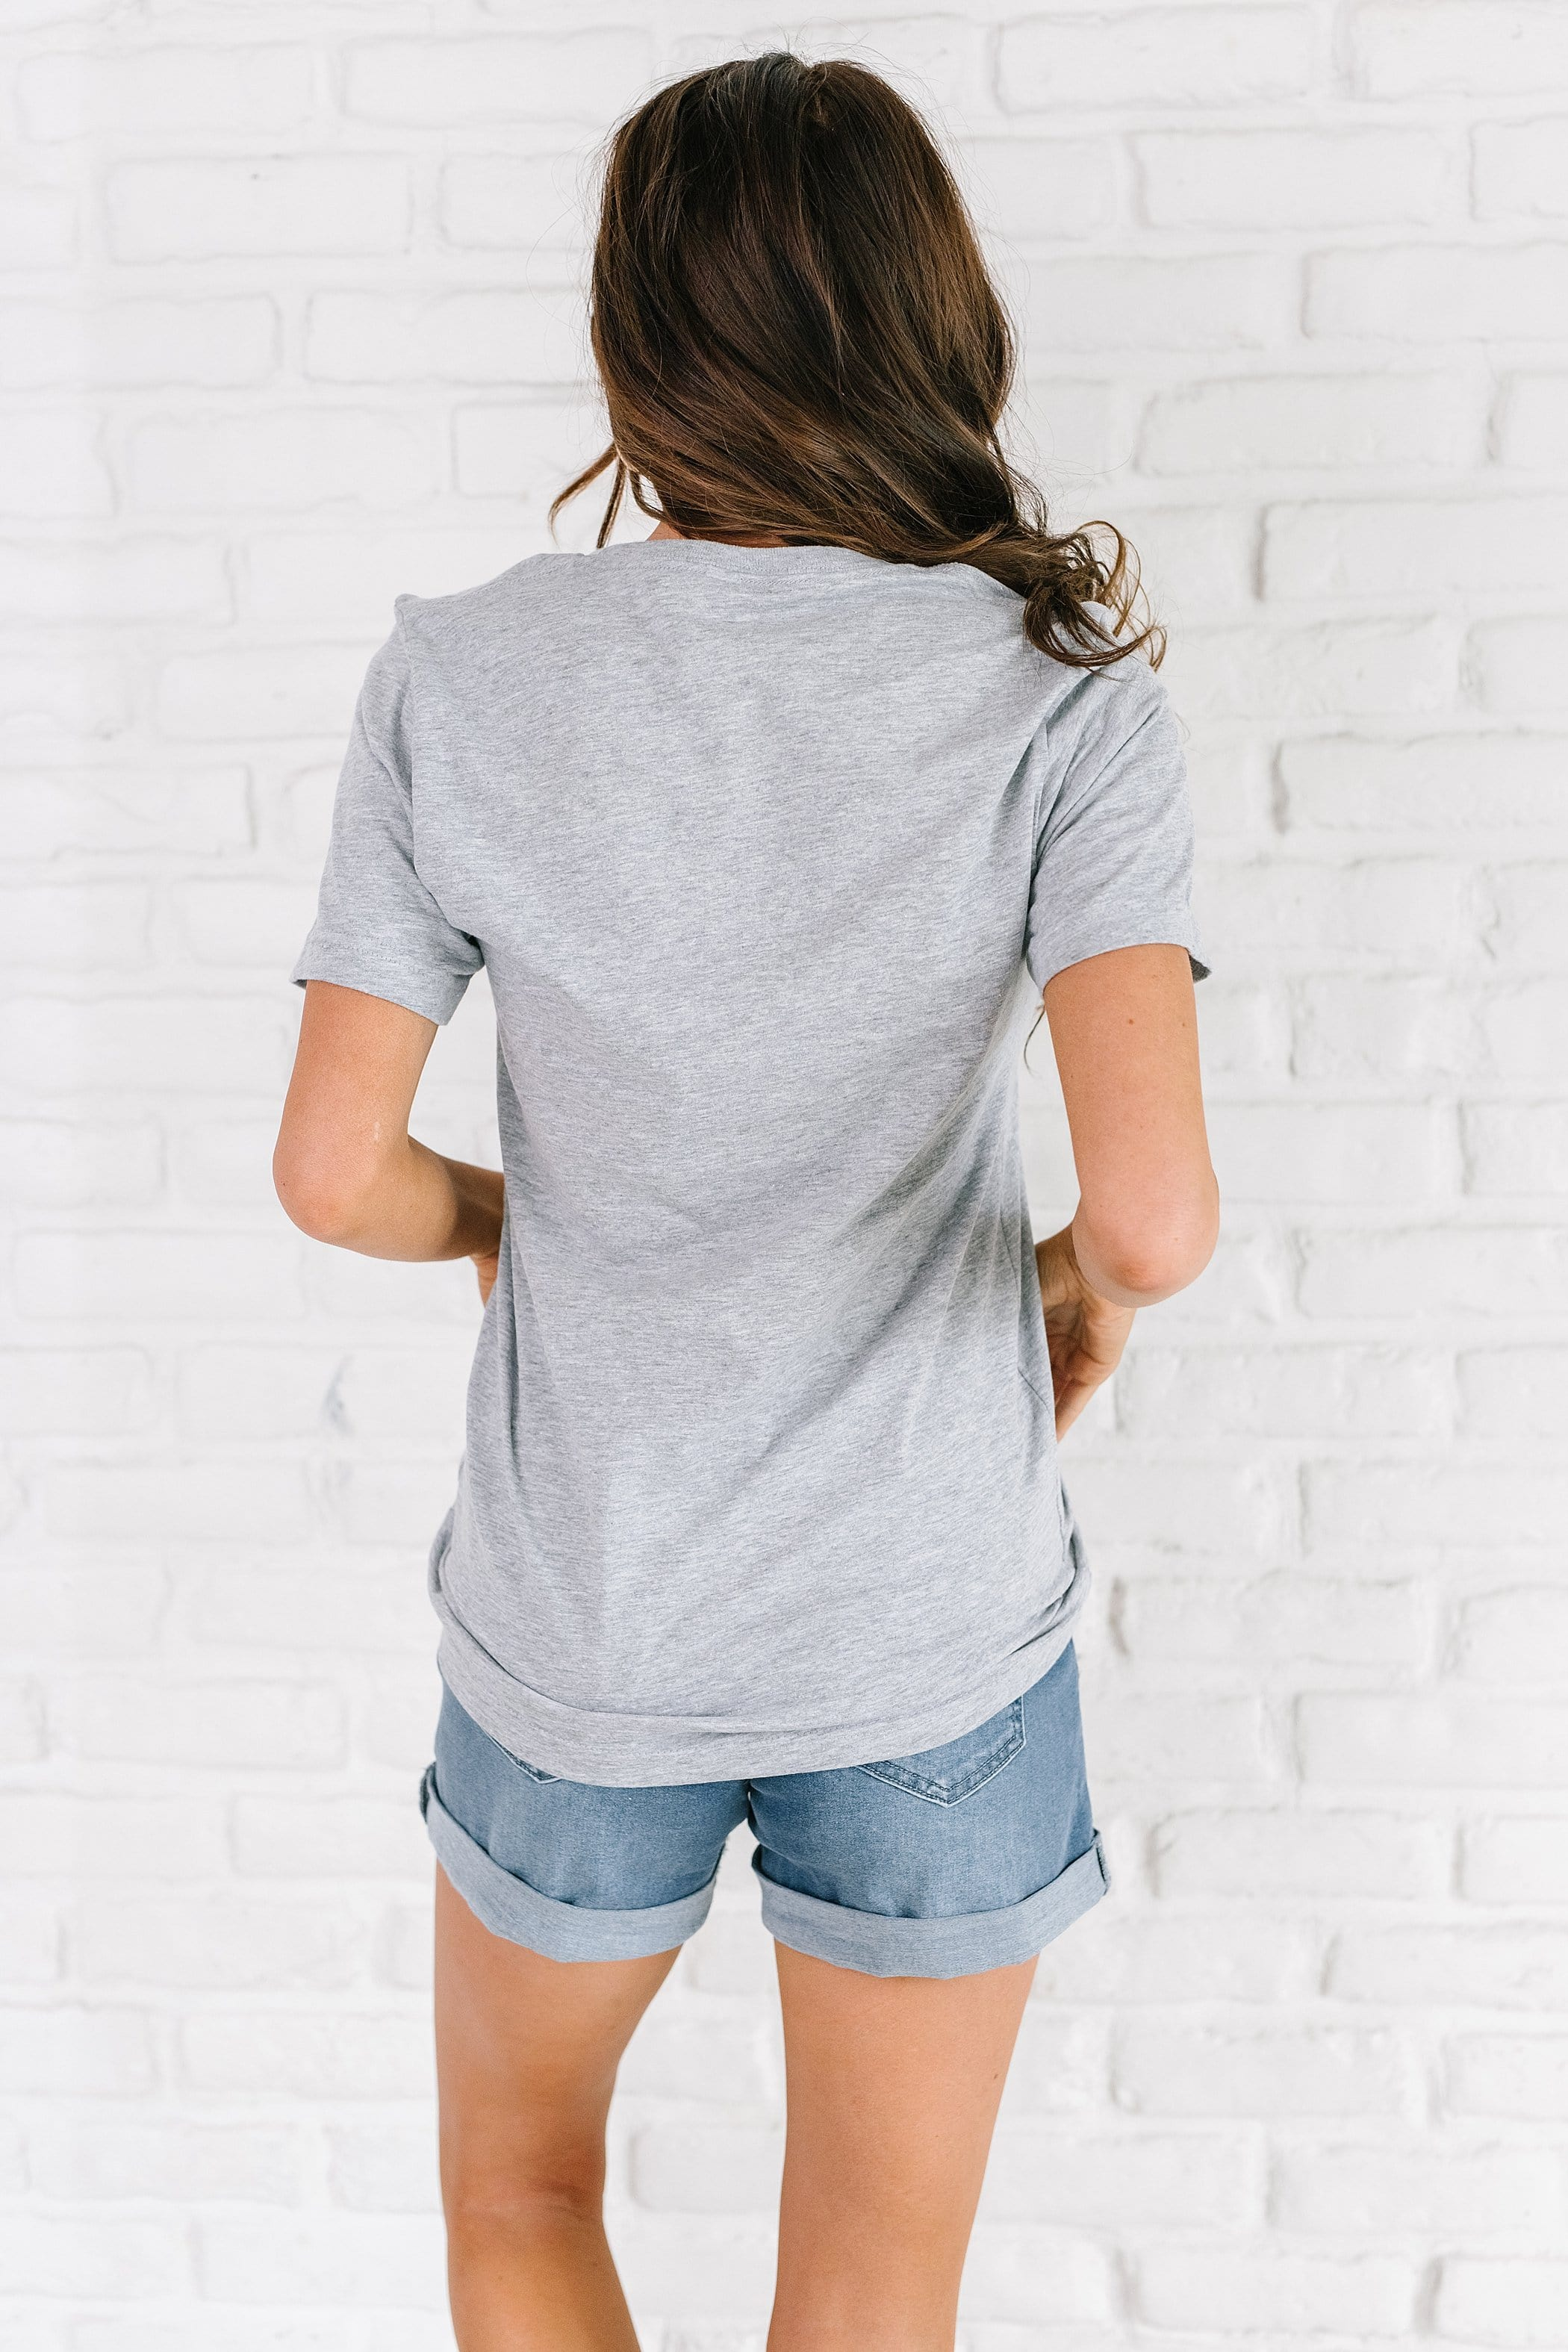 The Flag Lips Graphic Top in Heather Grey - Size XL